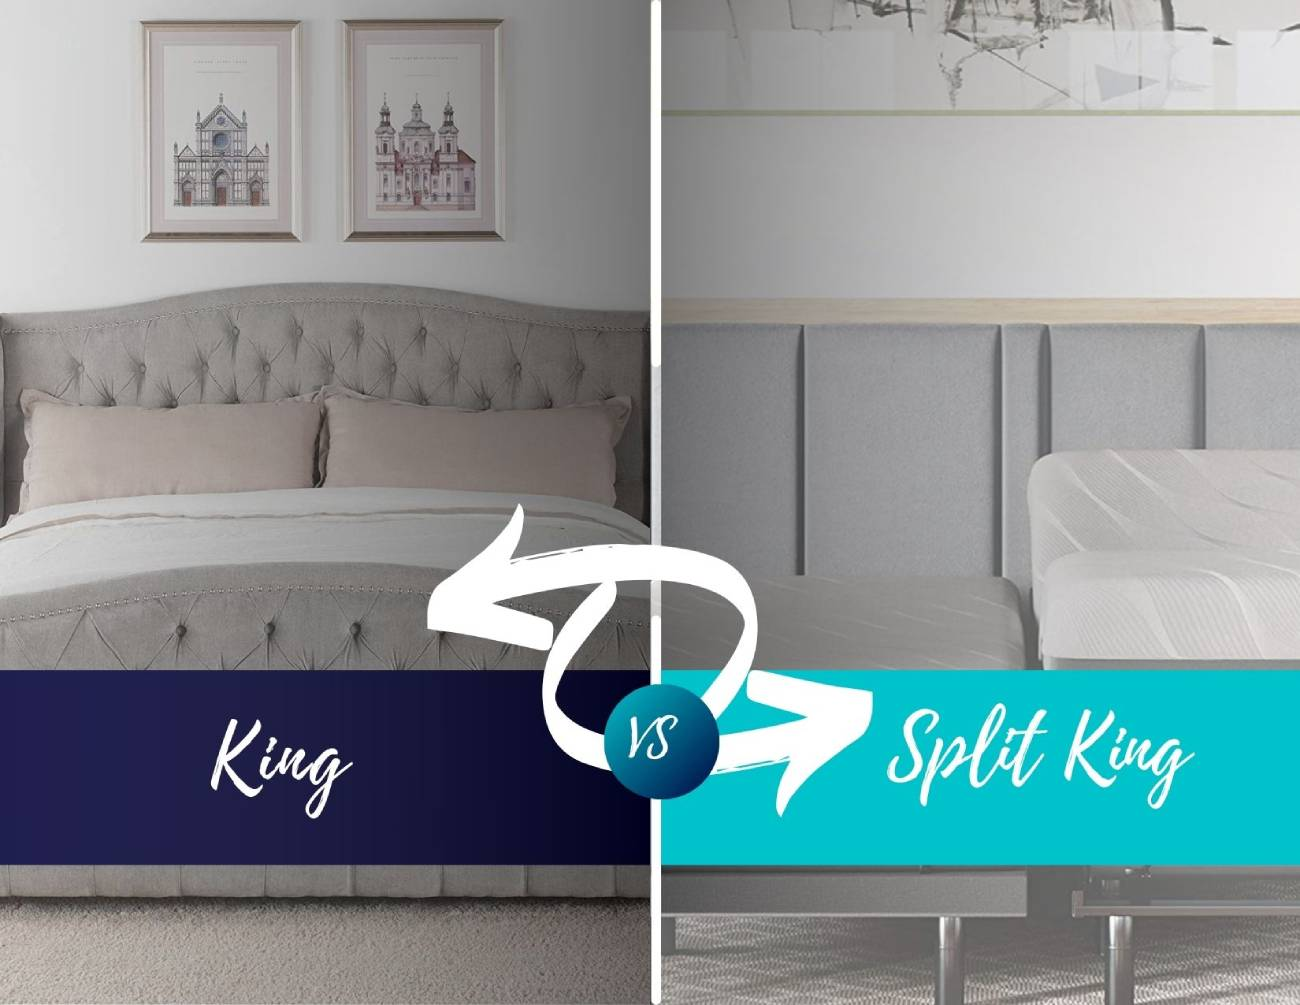 king-vs-split-king-what-is-the-difference